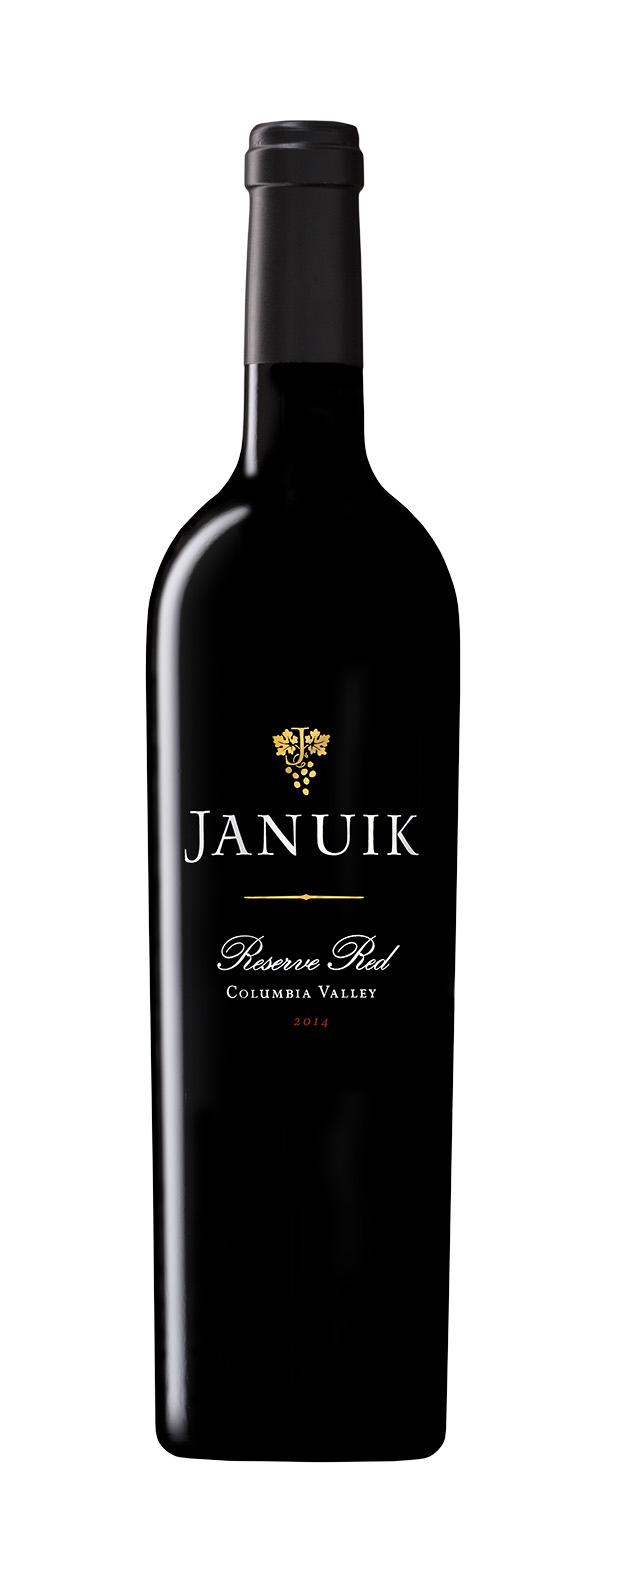 Januik 2014 1.5L Reserve Red Wine